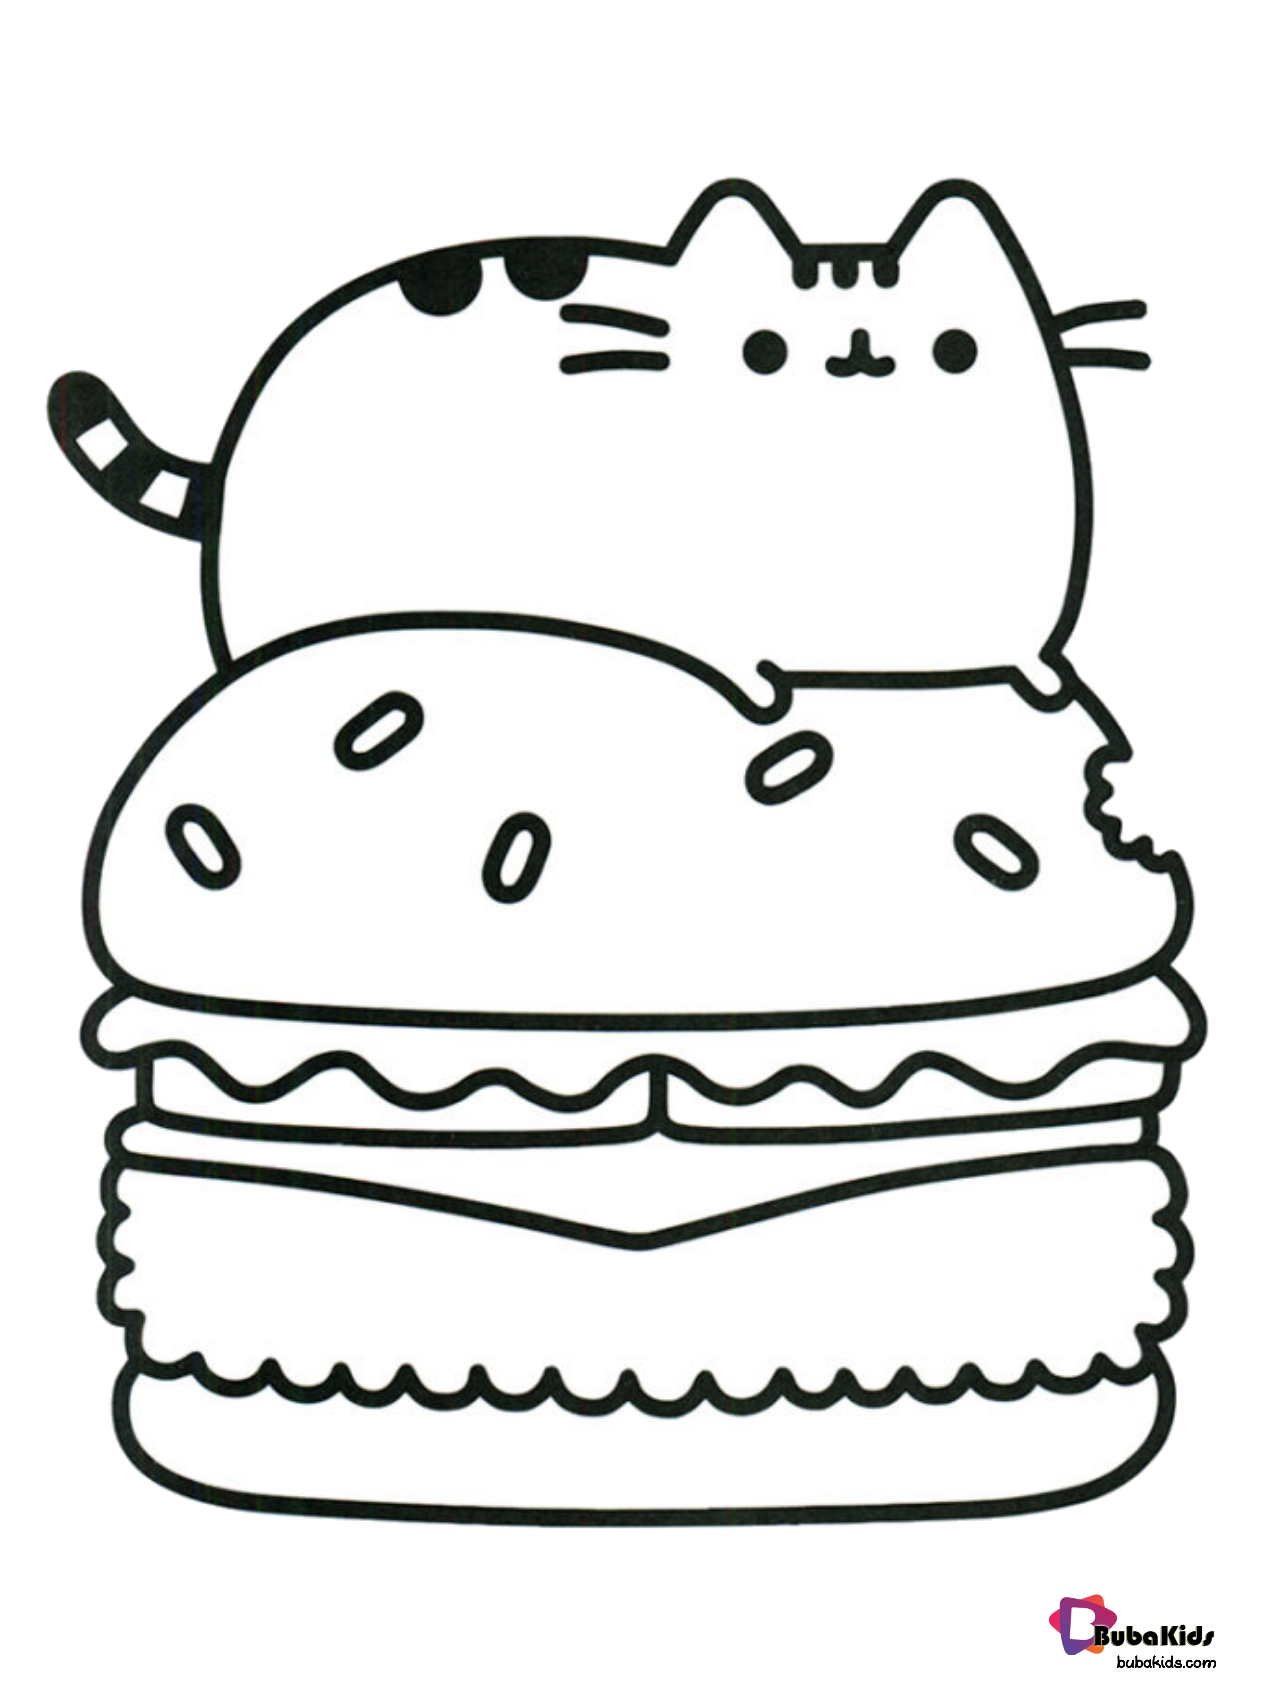 Pusheen Cat Coloring Page : pusheen, coloring, Pusheen, Eating, Burger, Coloring, Page., Collection, Cartoon, Pages, Te…, Pages,, Unicorn